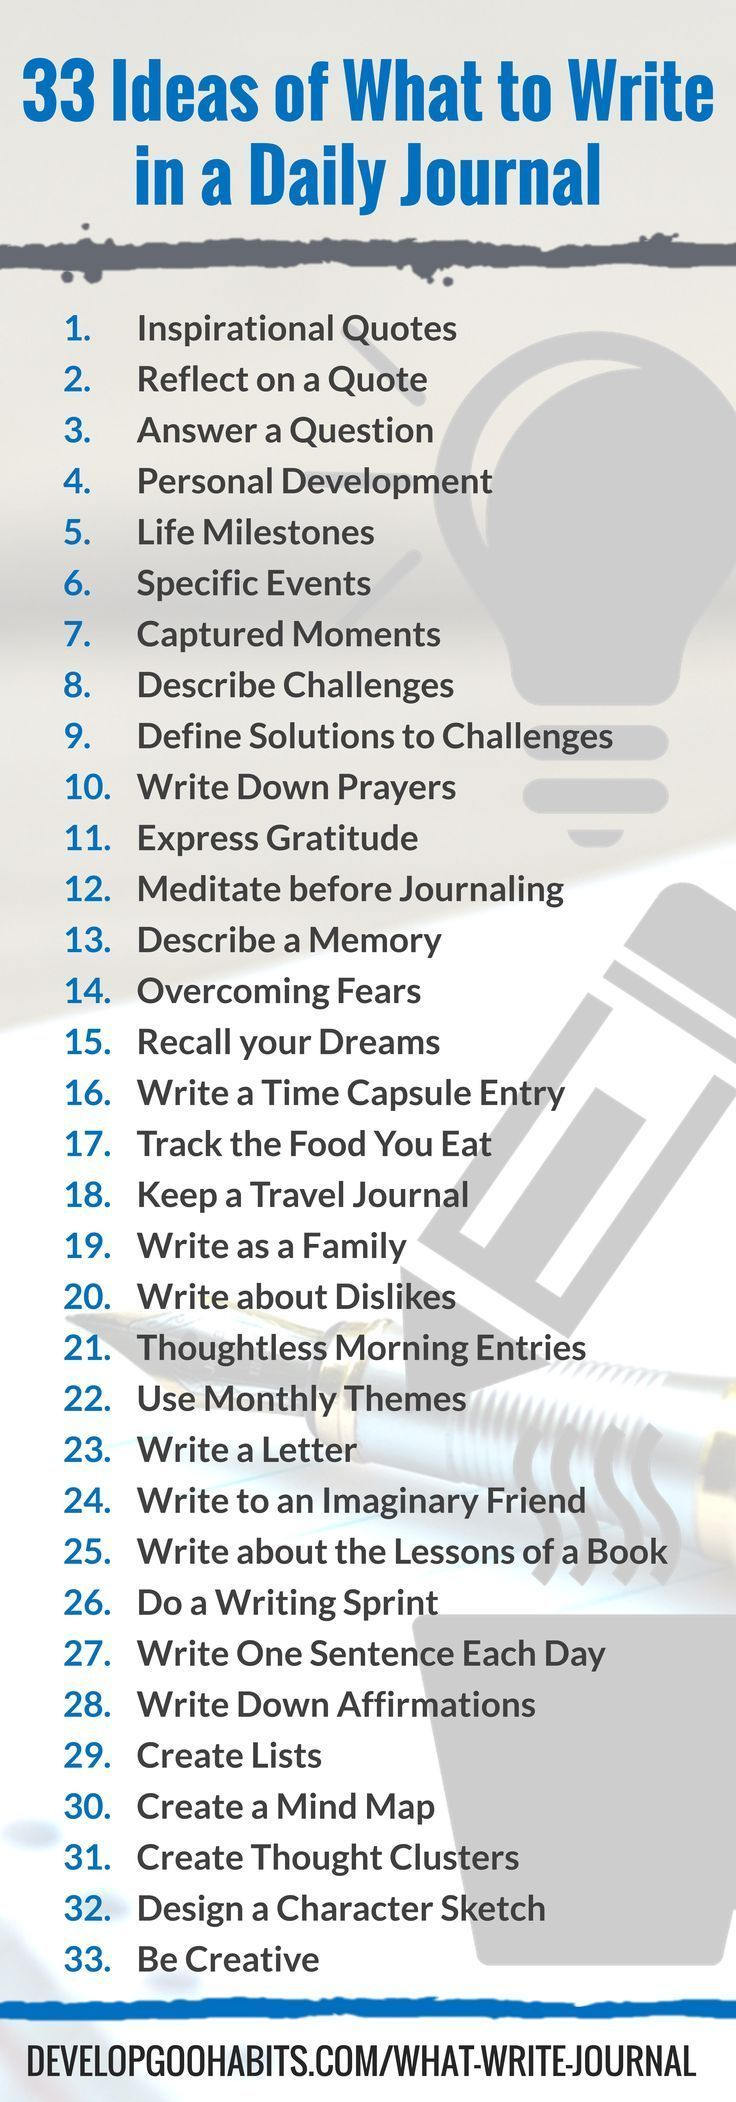 33 journaling ideas what to write about in a daily journal